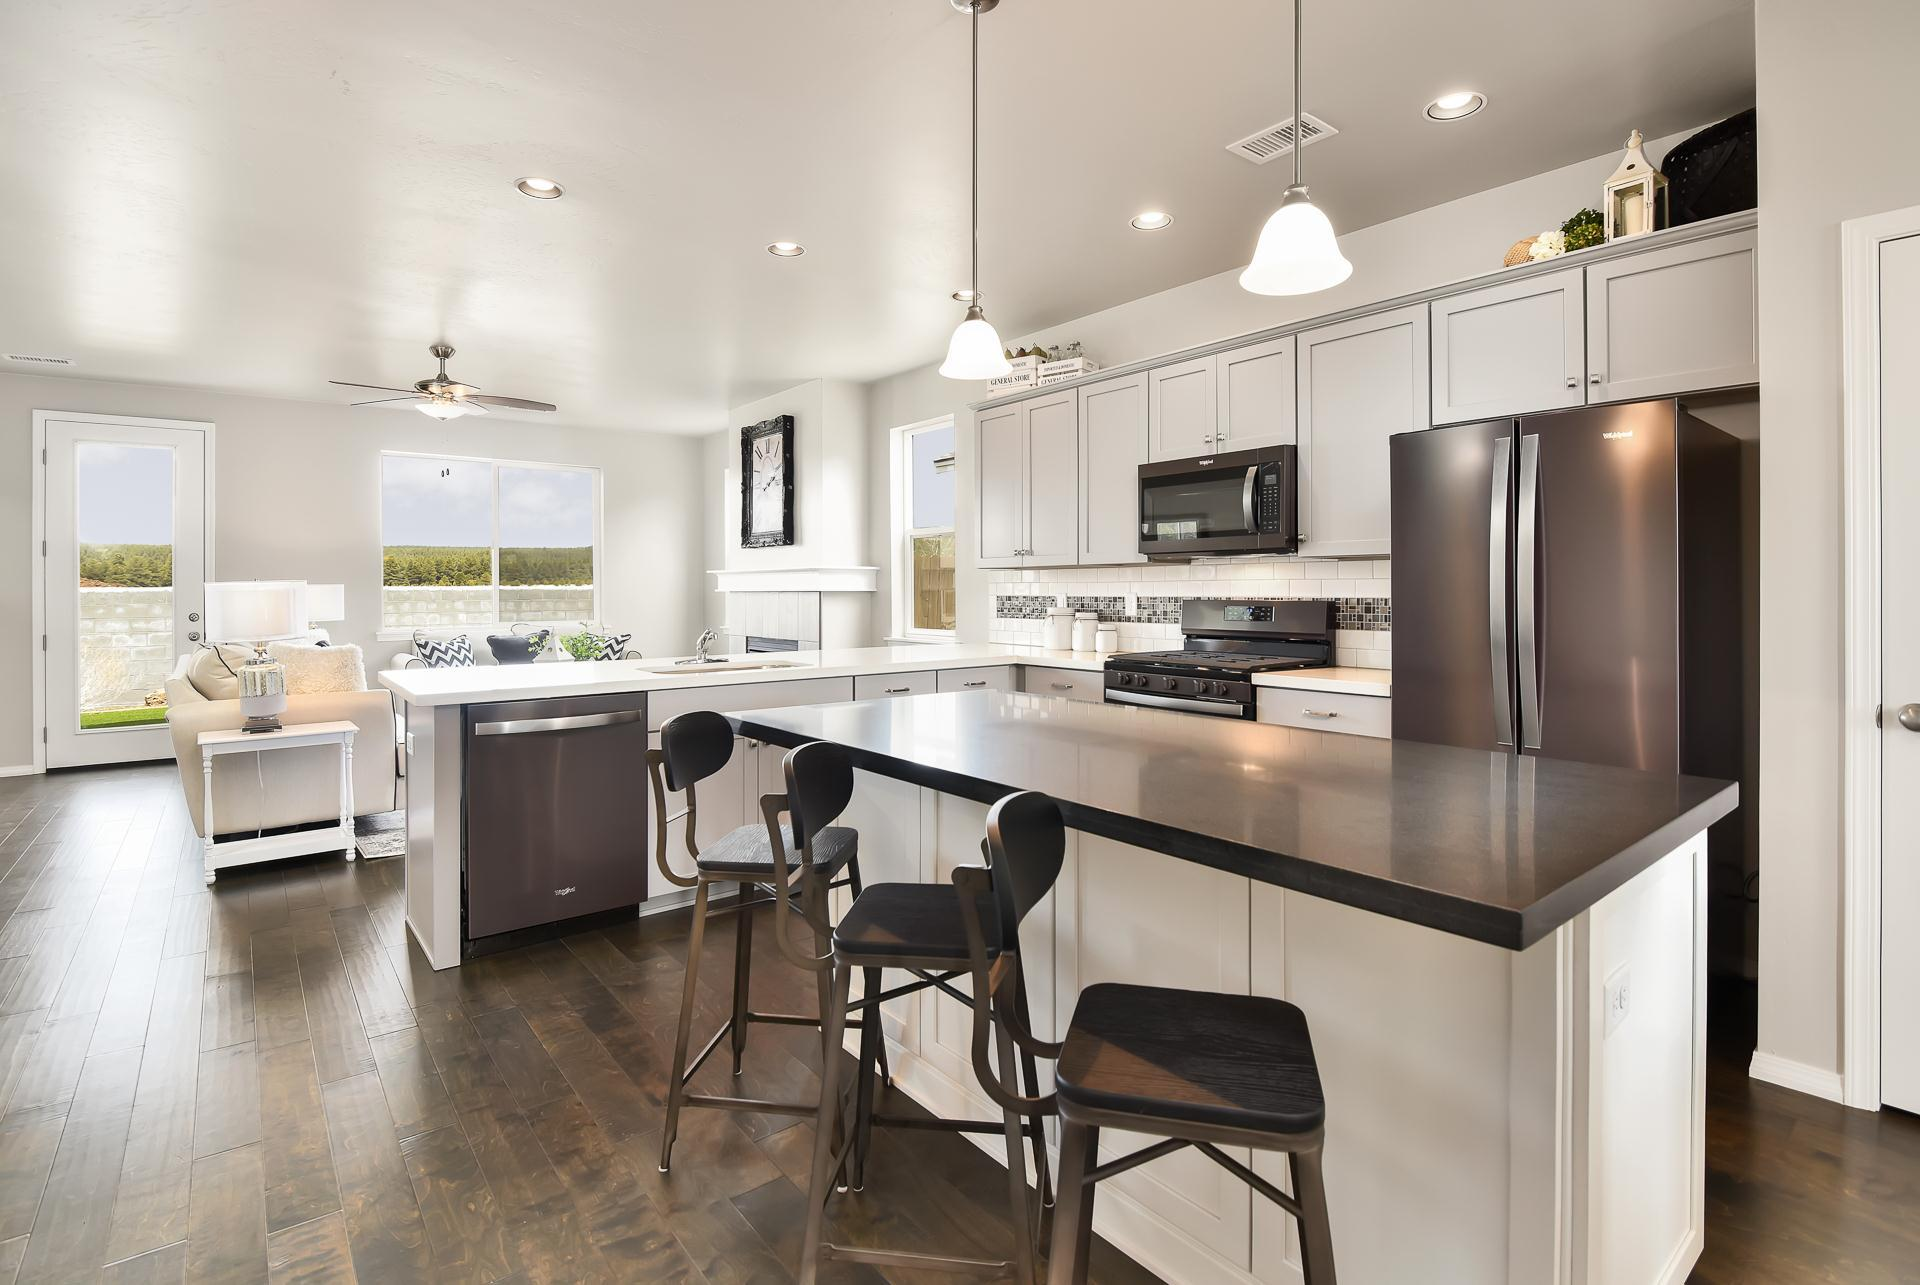 Kitchen featured in the Flagstaff Meadows Plan 2090 By Capstone Homes in Flagstaff, AZ